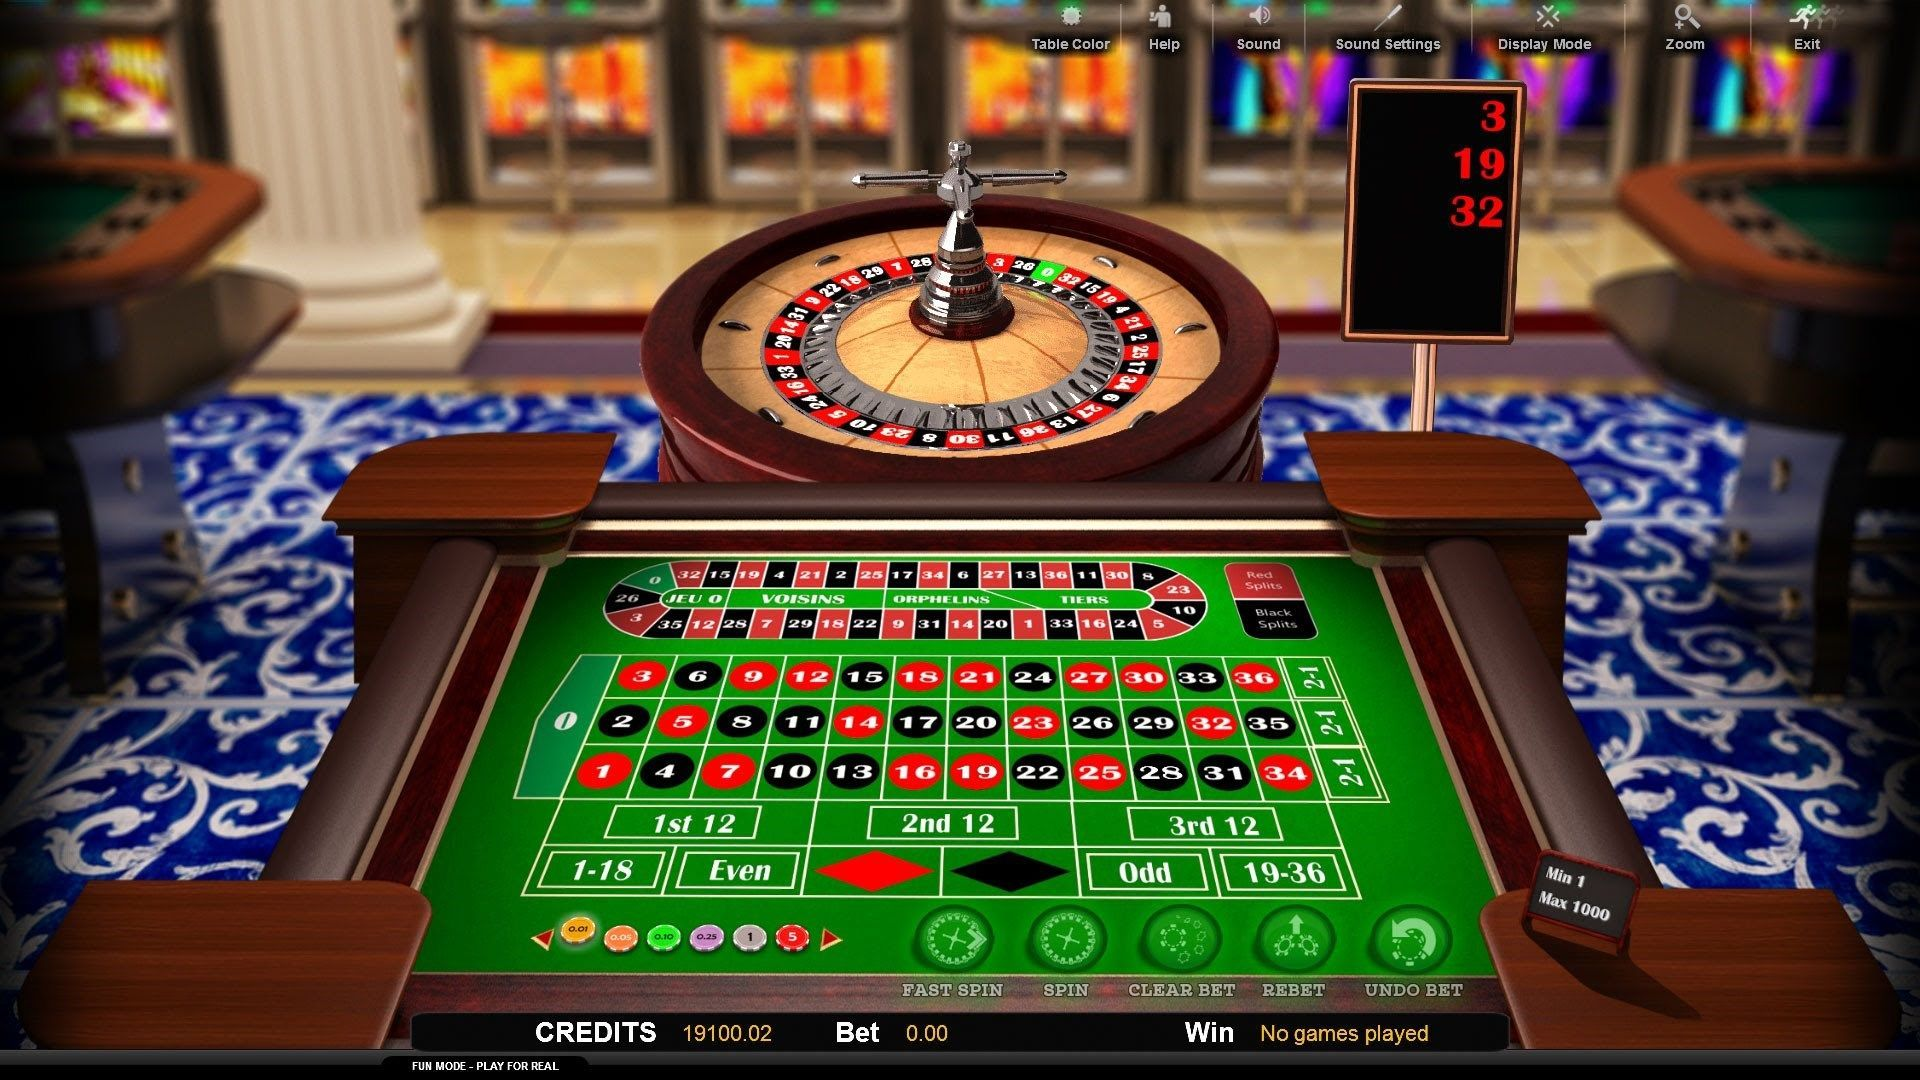 Online casino Malaysia and the facilities it gives the public with their information